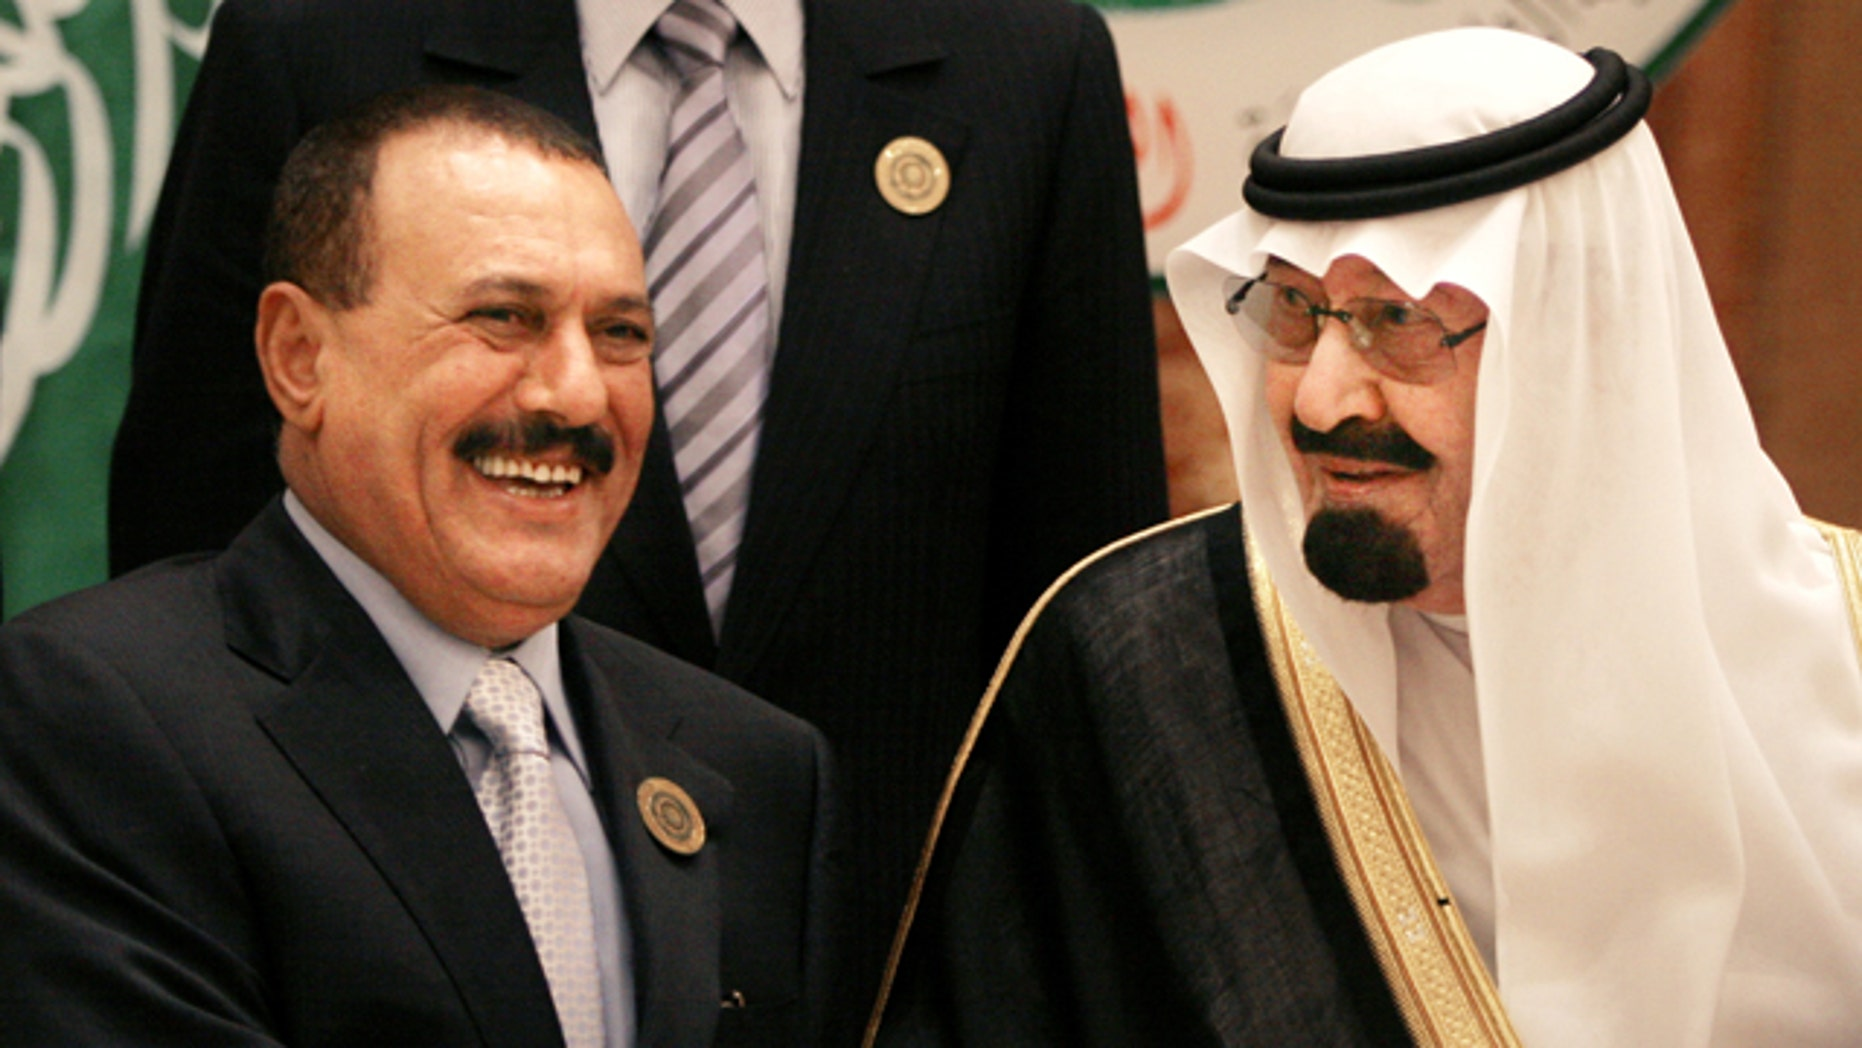 FILE - In this March 27, 2007 file photo, Saudi King Abdullah bin Abd al-Aziz, right, shakes hands with Yemeni President Ali Abdullah Saleh before the Arab summit in Riyadh, Saudi Arabia. King Abdullah has mediated a one-week cease-fire in Yemen between the warring forces of President Ali Abdullah Saleh and the anti-government opposition, following an attack on Saleh's presidential palace compound in Sanaa, Yemen, Friday, June 3, 2011.